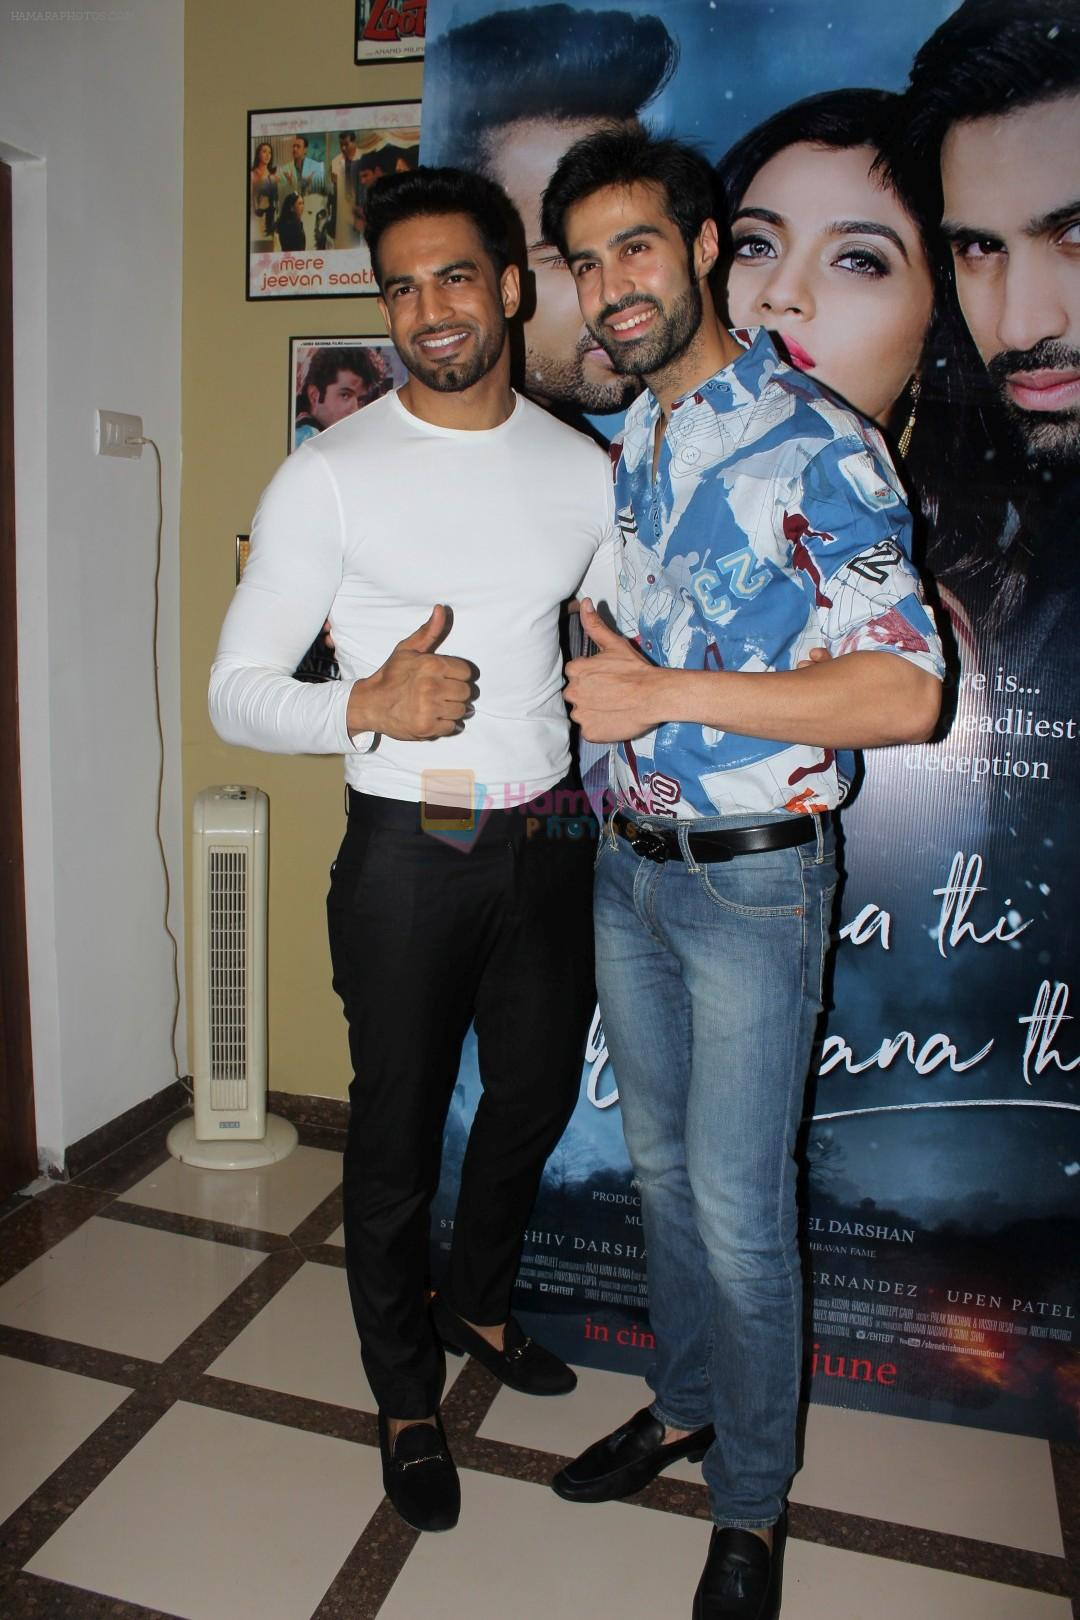 Upen Patel, Shiv Darshan Interview For Film Ek Haseena Thi Ek Deewana Tha on 16th June 2017